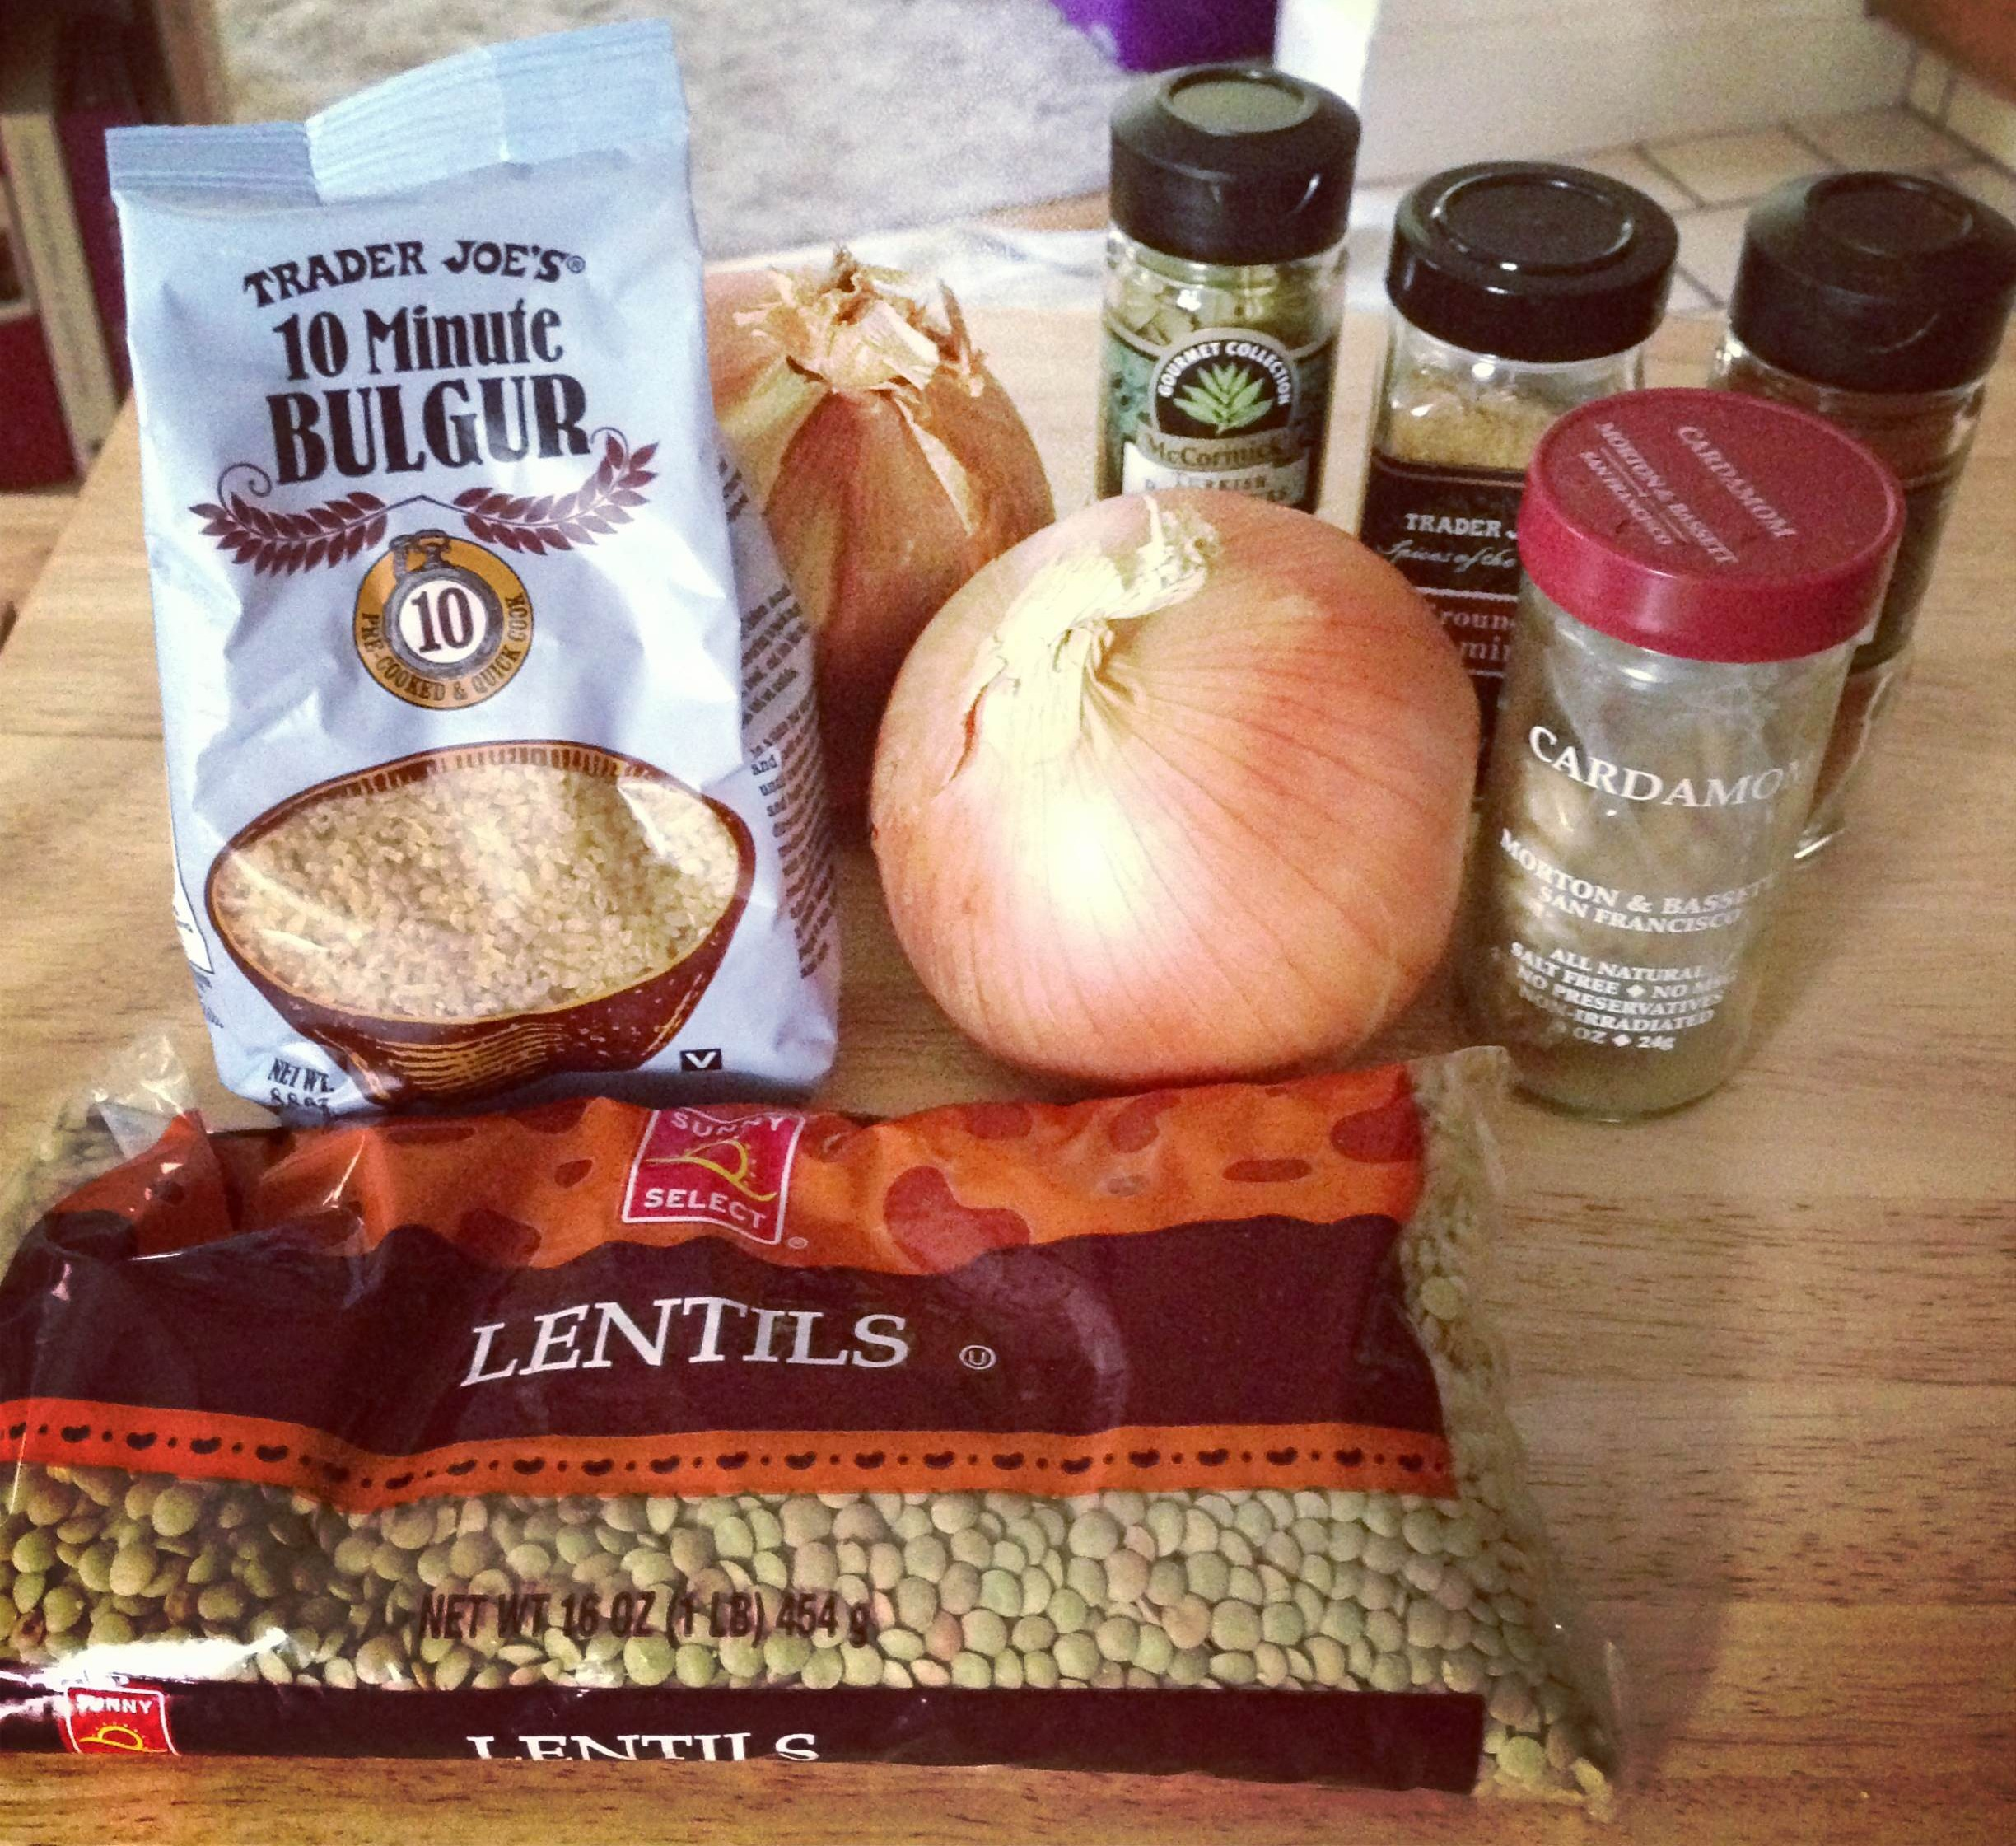 Ingredients for Lentil and Bulgur Pilaf with Caramelized Onion